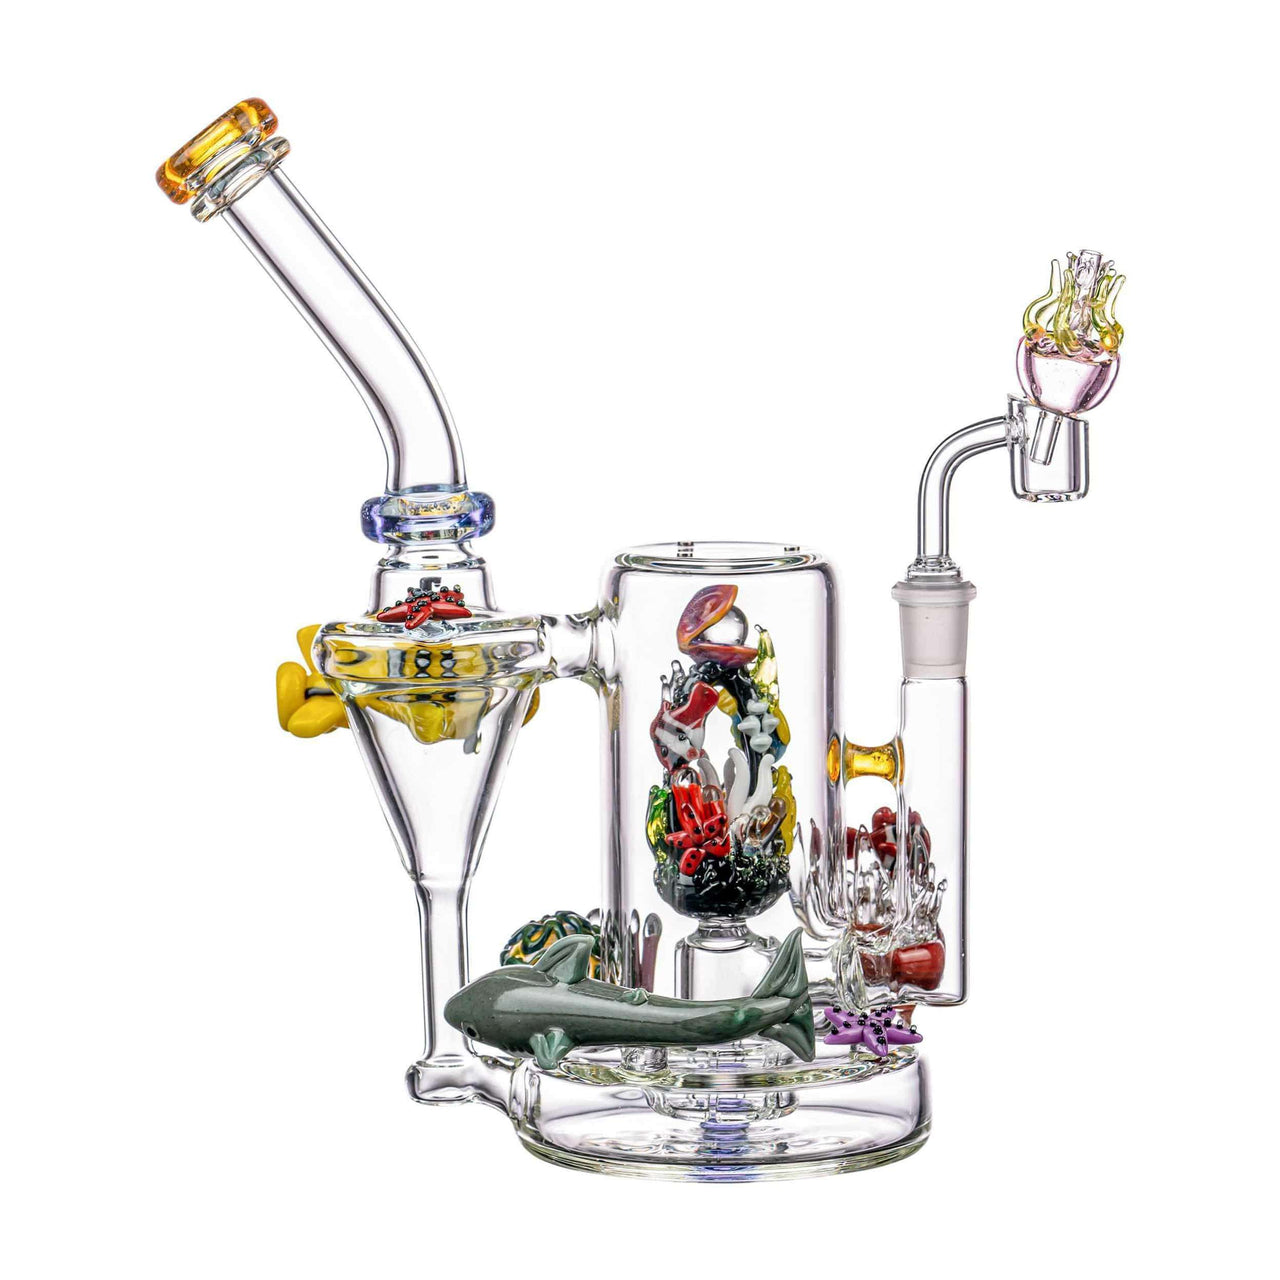 Empire Glassworks Self-Illuminating Aquatic Themed Rig | The710Source.com